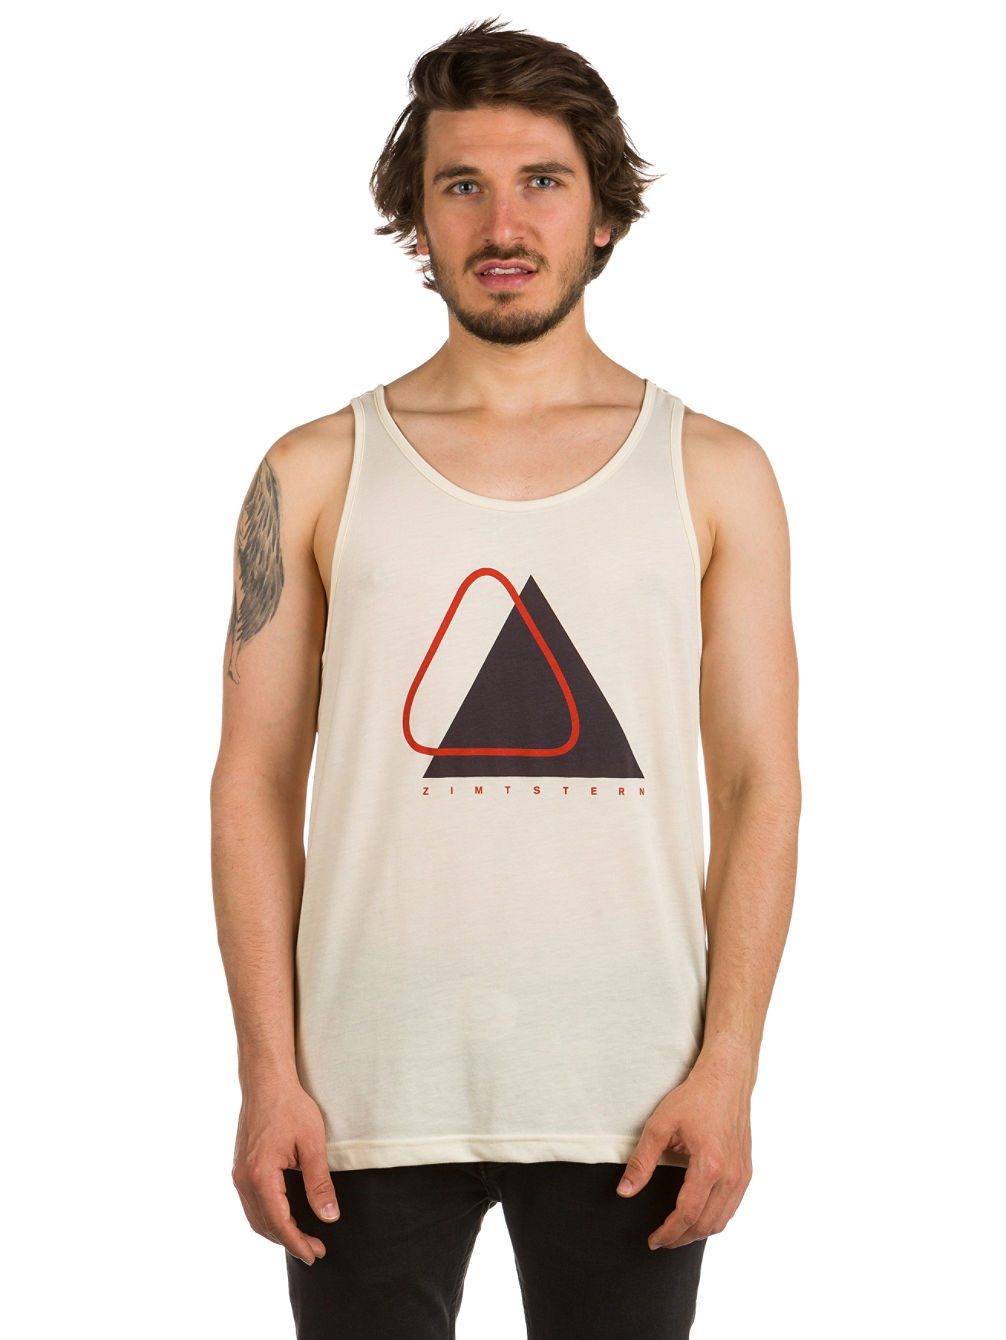 e64a0f0fe5843c Buy Zimtstern Jozze Tank Top online at blue-tomato.com